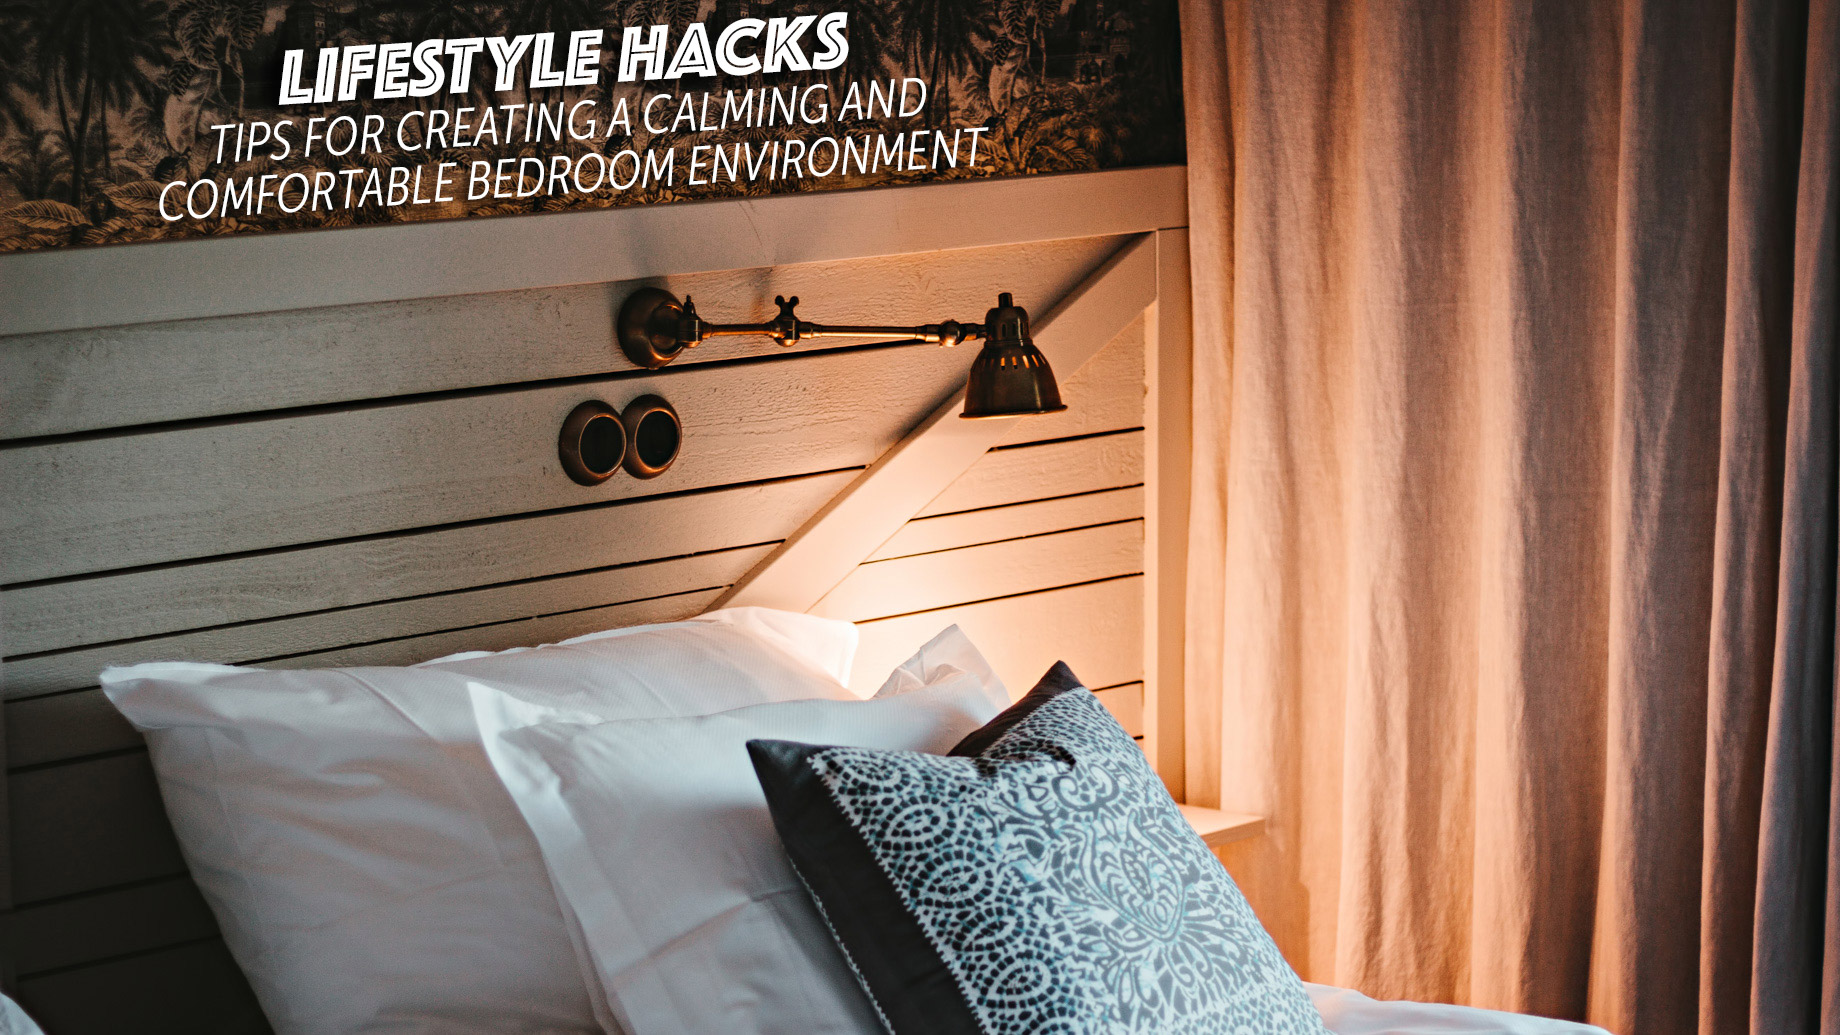 Lifestyle Hacks - Tips for Creating a Calming and Comfortable Bedroom Environment